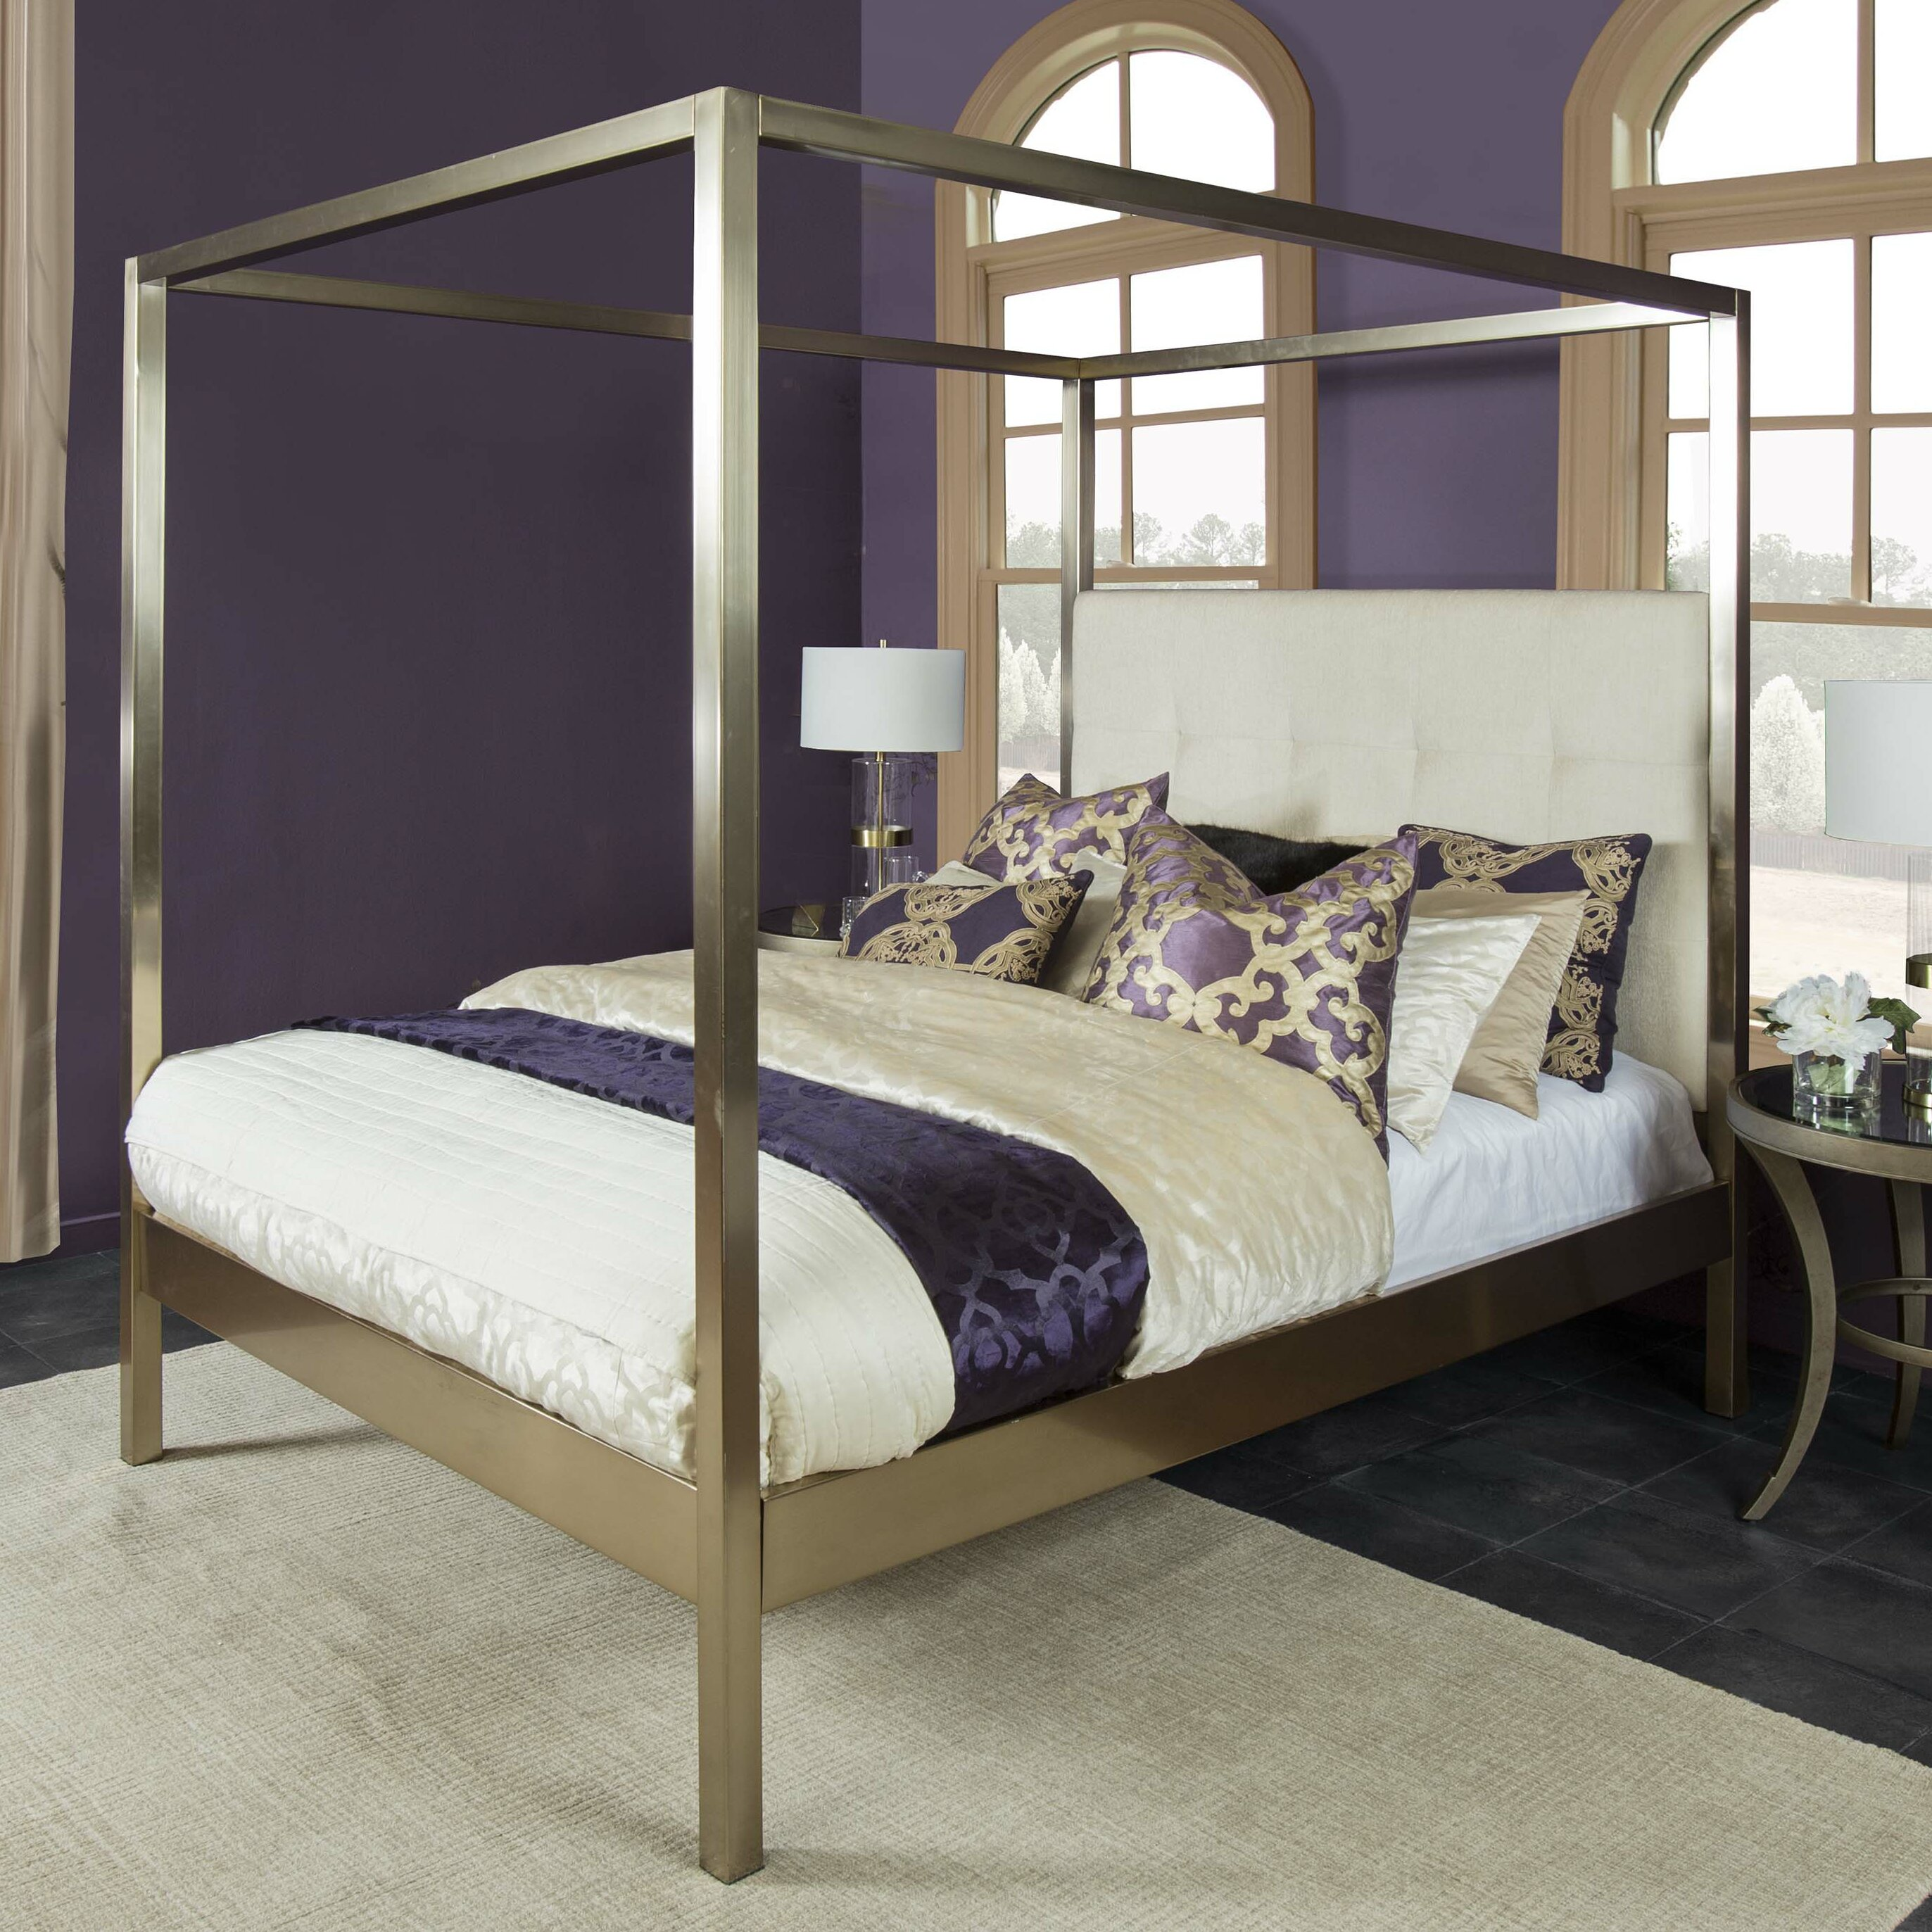 Canopy Beds You'll Love | Wayfair - Goethe Upholstered Canopy Bed